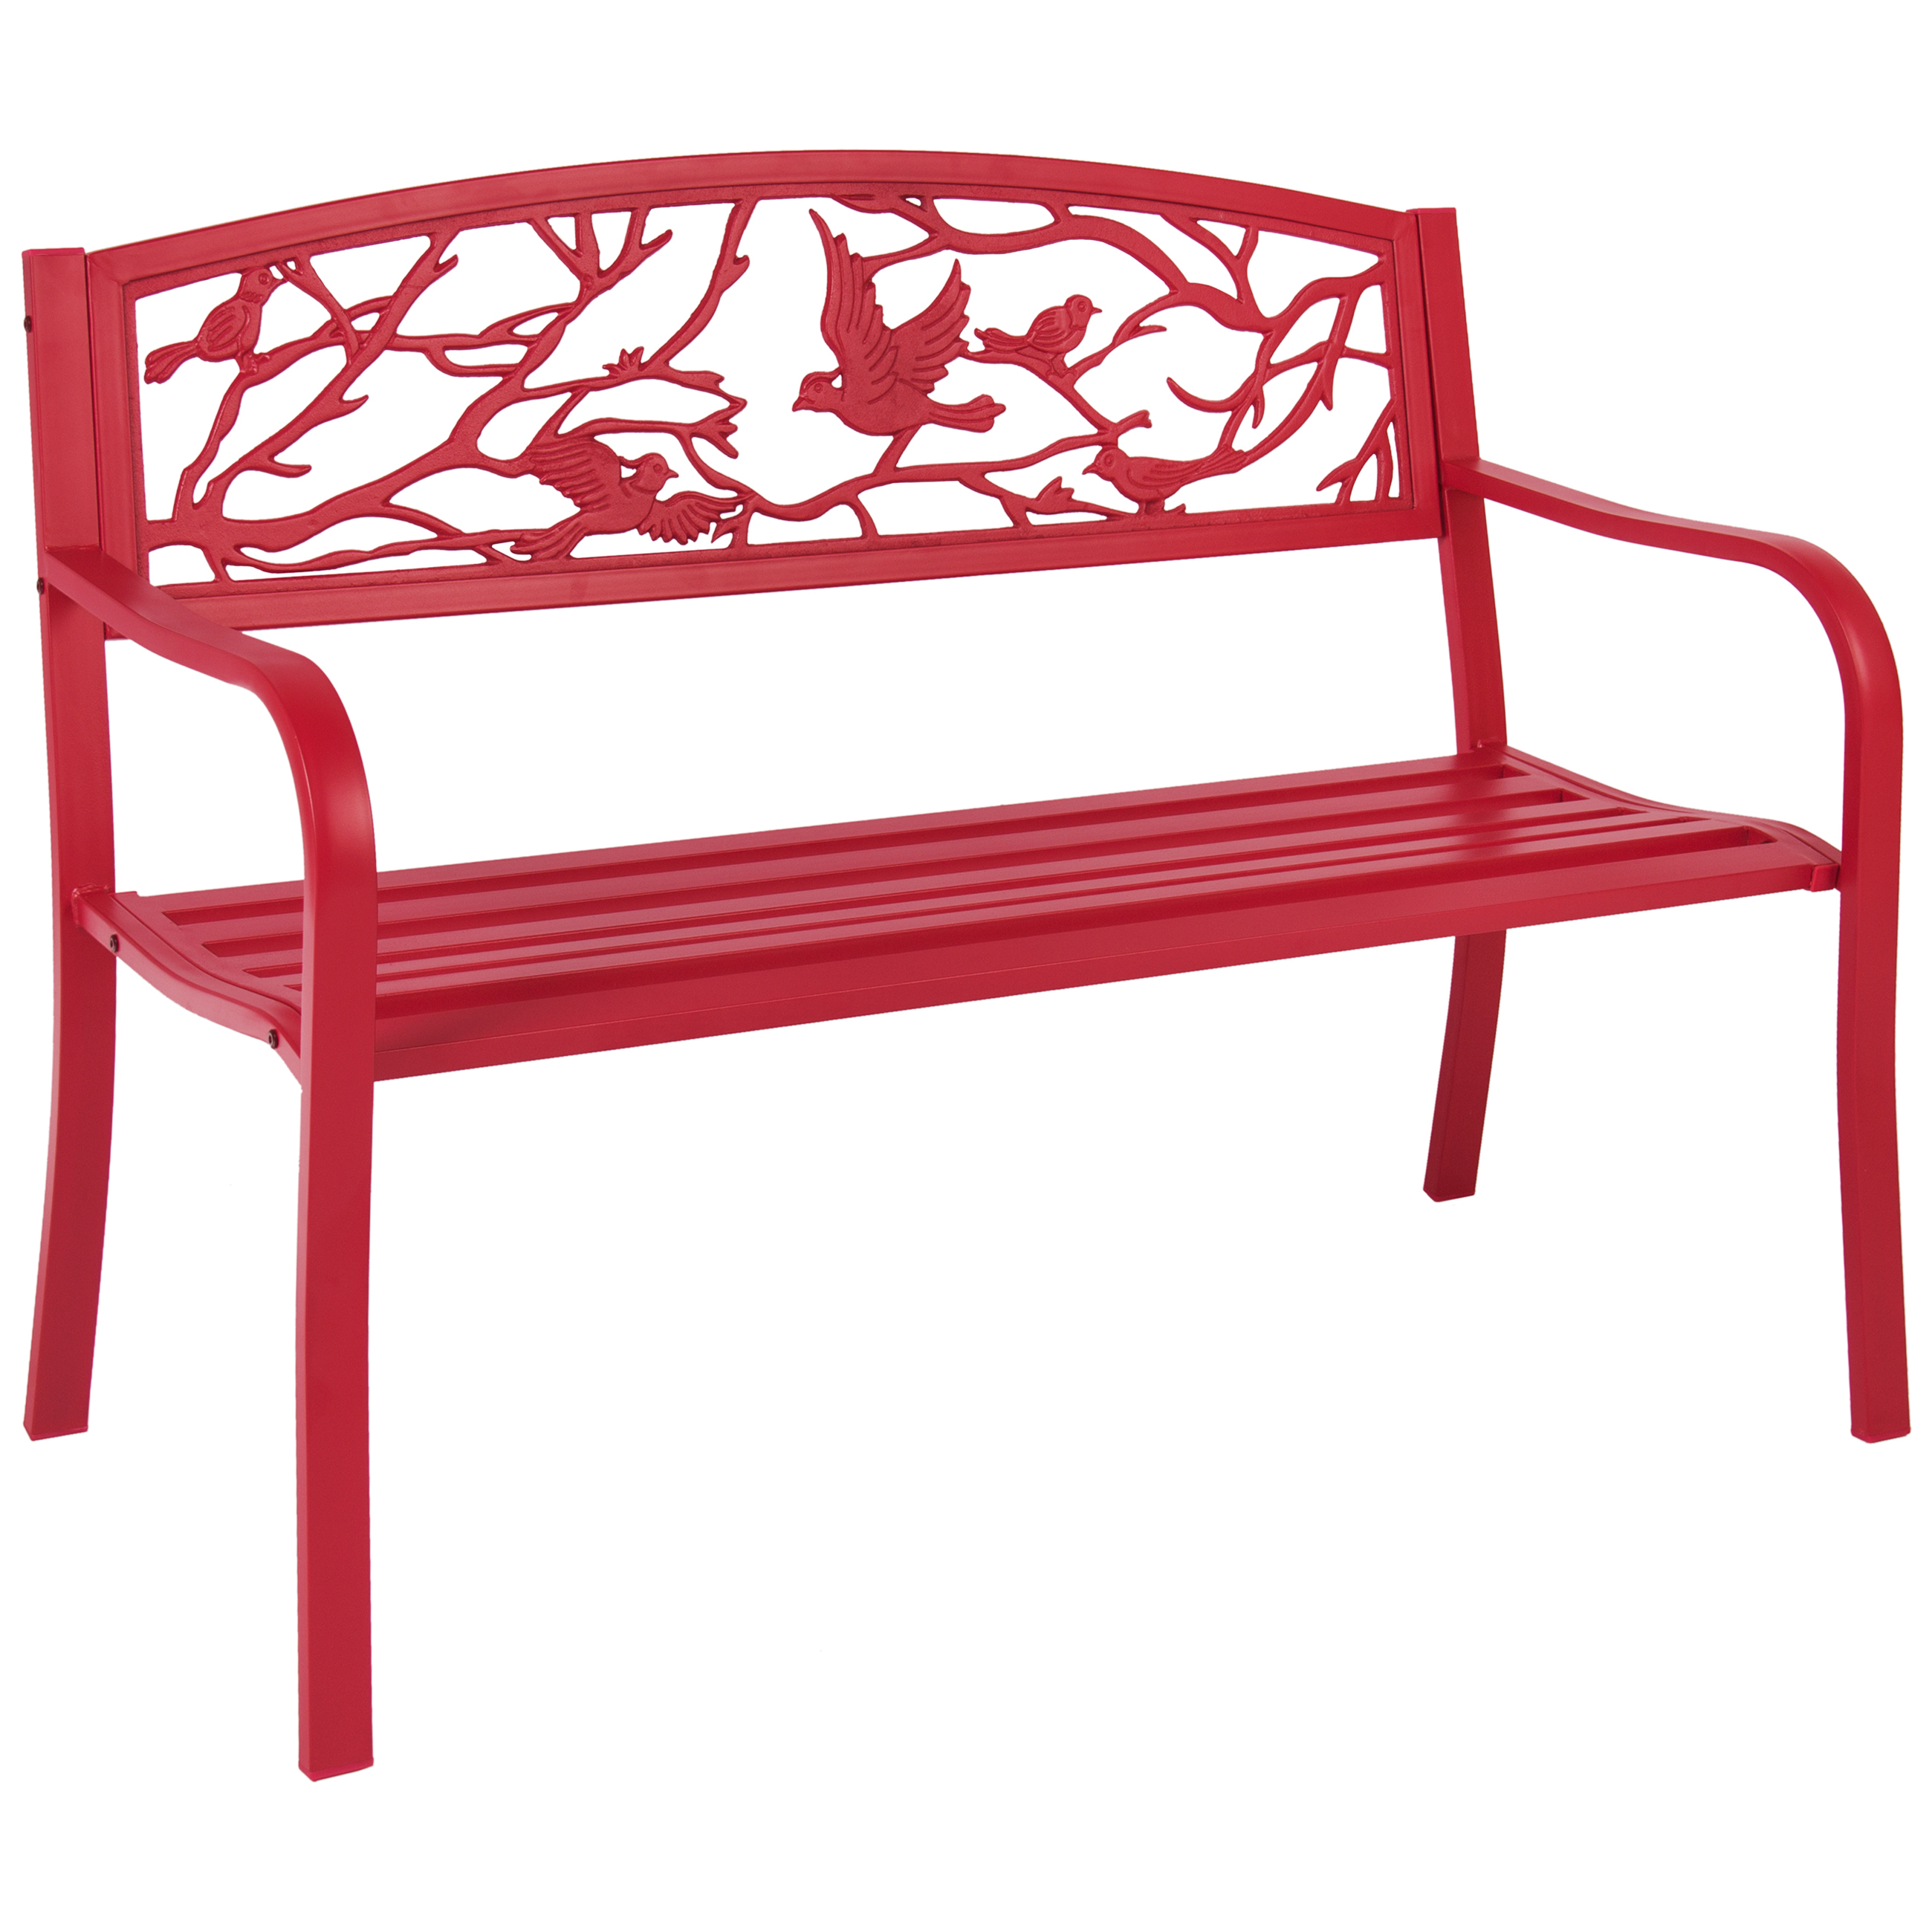 Best Choice Products Rose Red Steel Patio Garden Park Bench Outdoor Living Patio Furniture by SKY